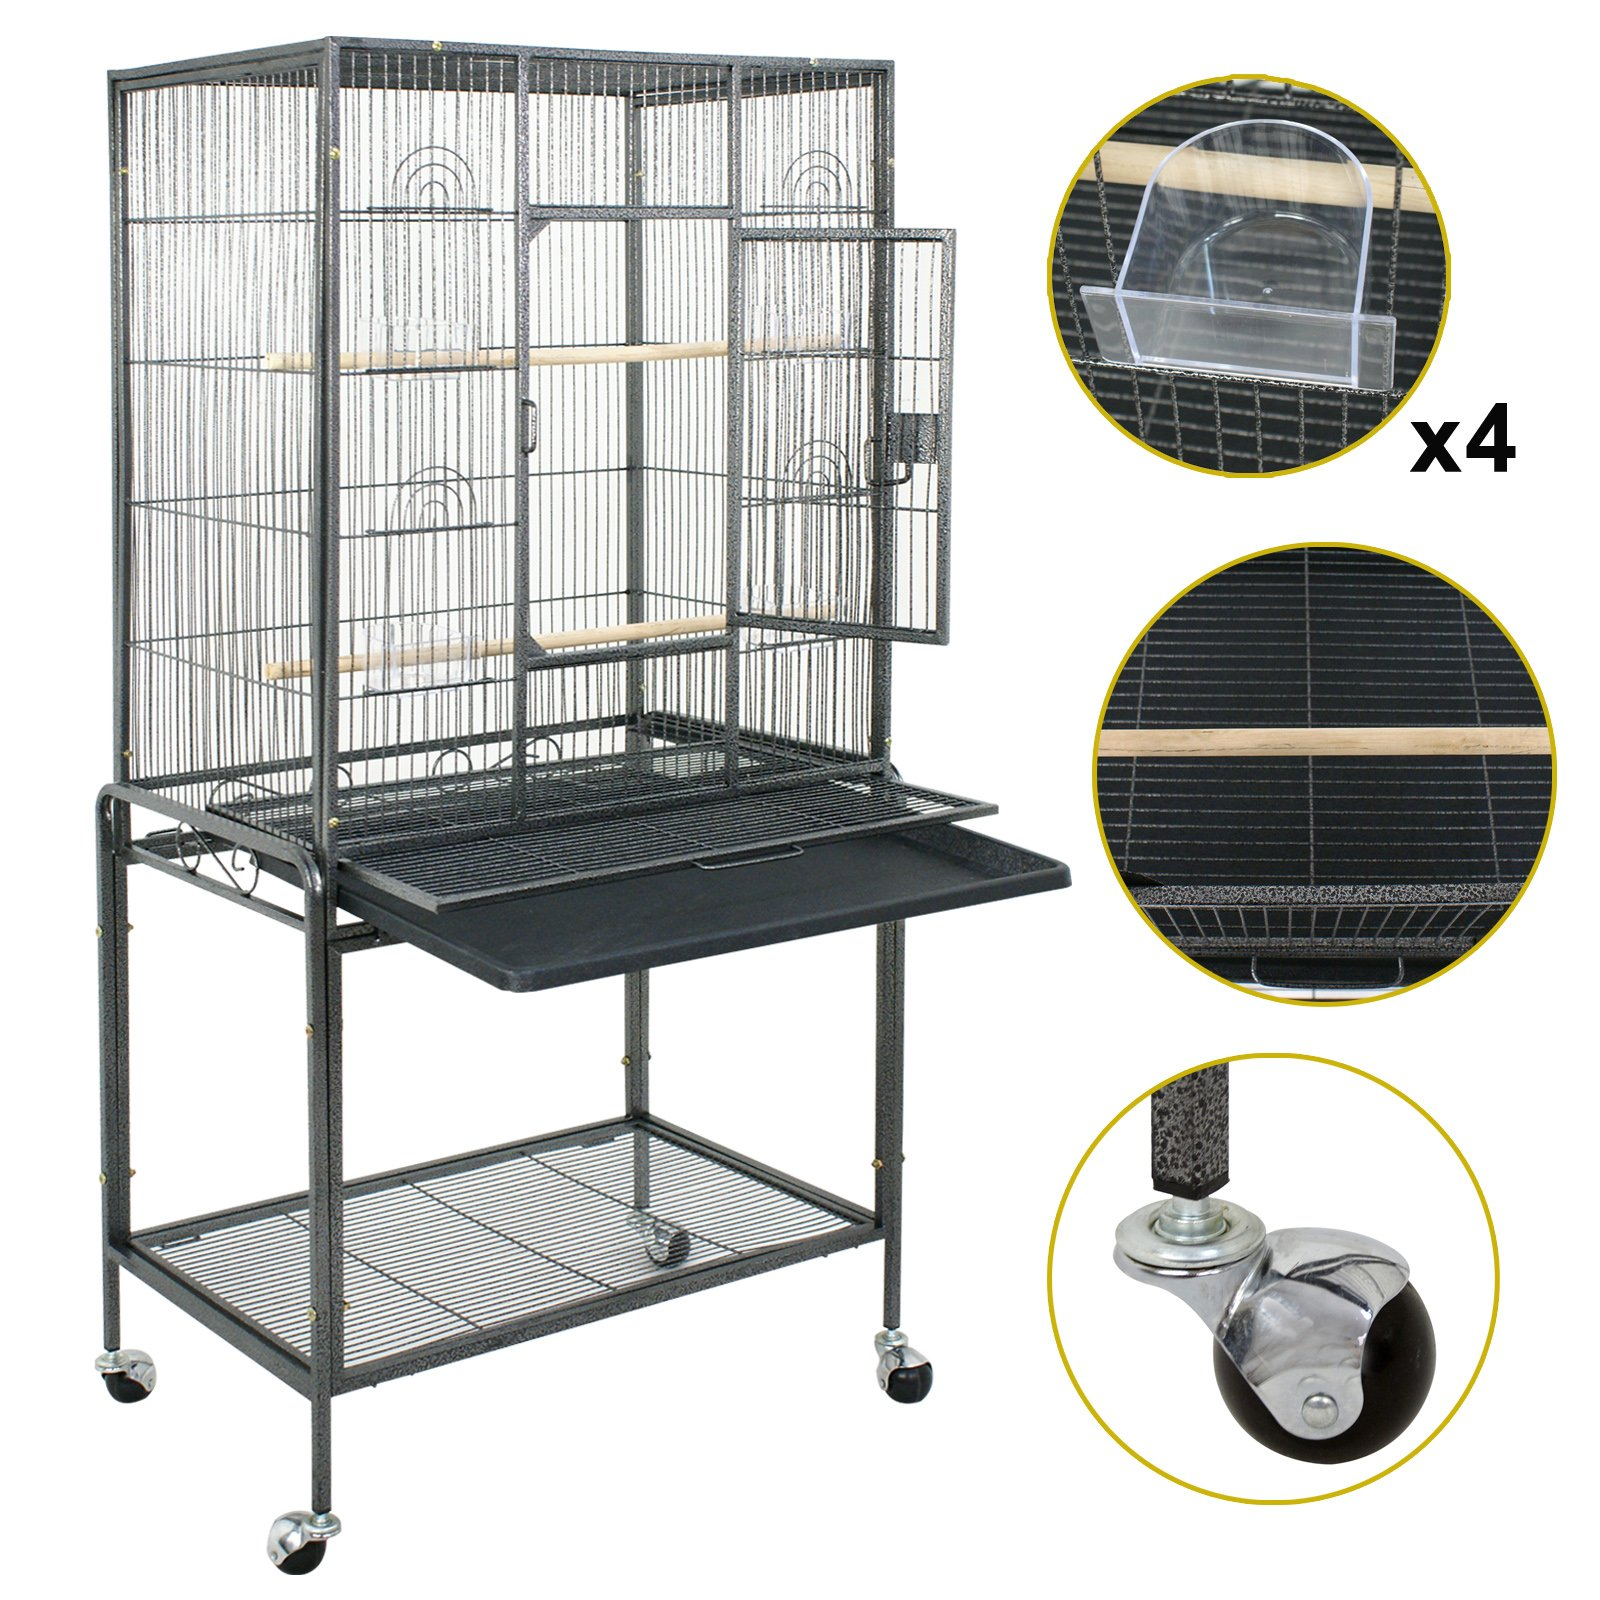 Super Deal 53''/61''/68'' Large Bird Cage Play Top Parrot Chinchilla Cage Macaw Cockatiel Cockatoo Pet House, 53 inch by SuperDealUsa (Image #1)